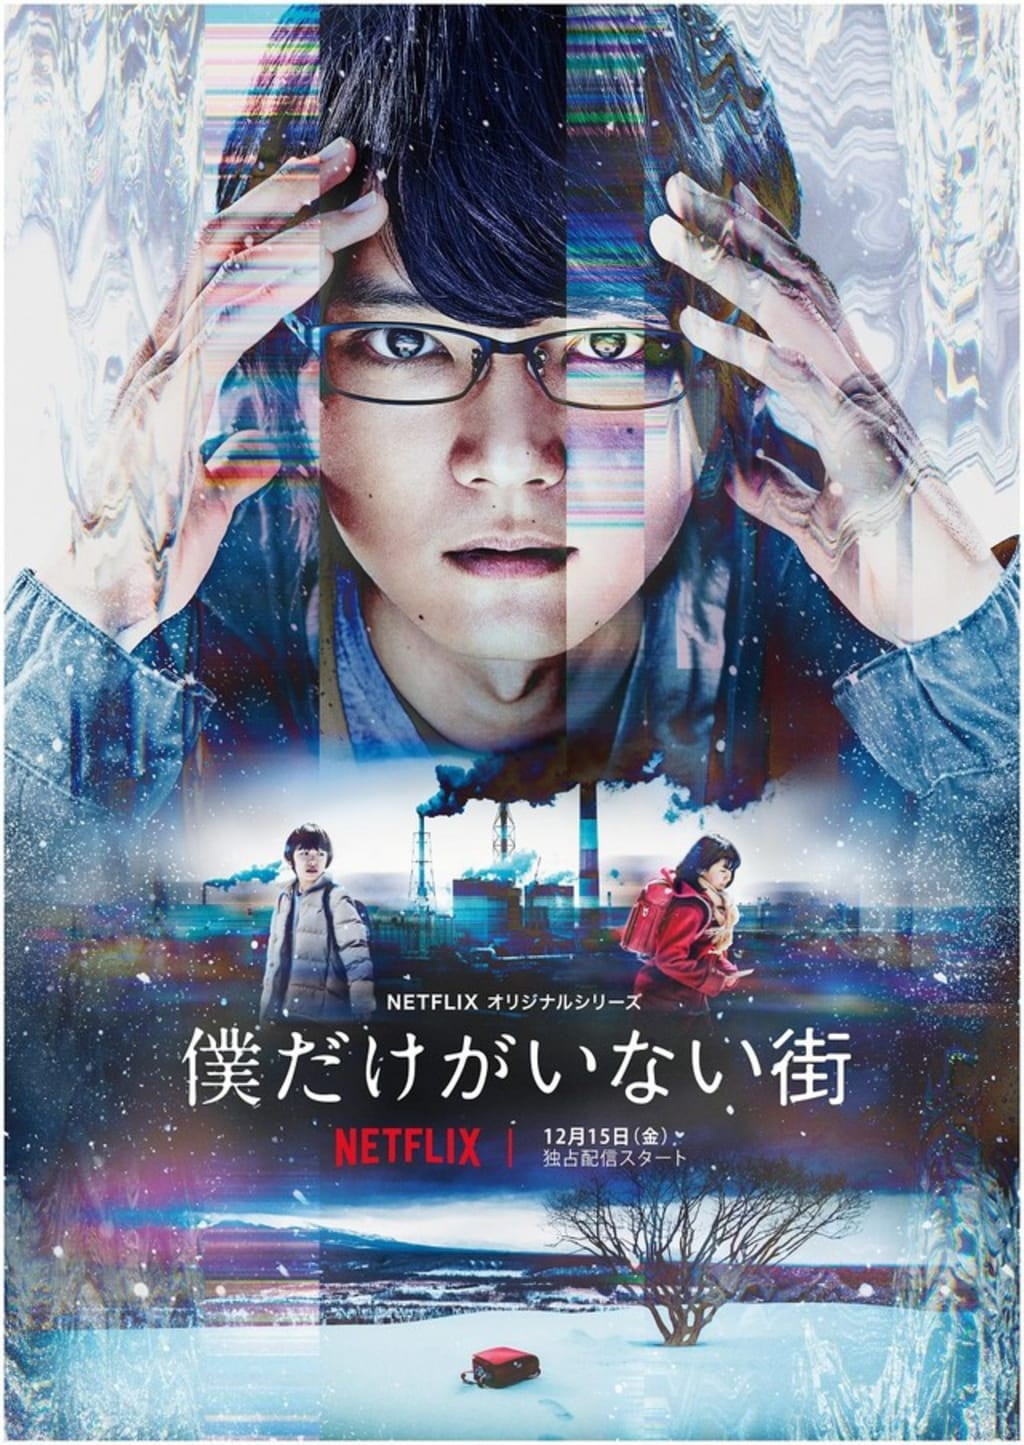 Review of 'Erased'